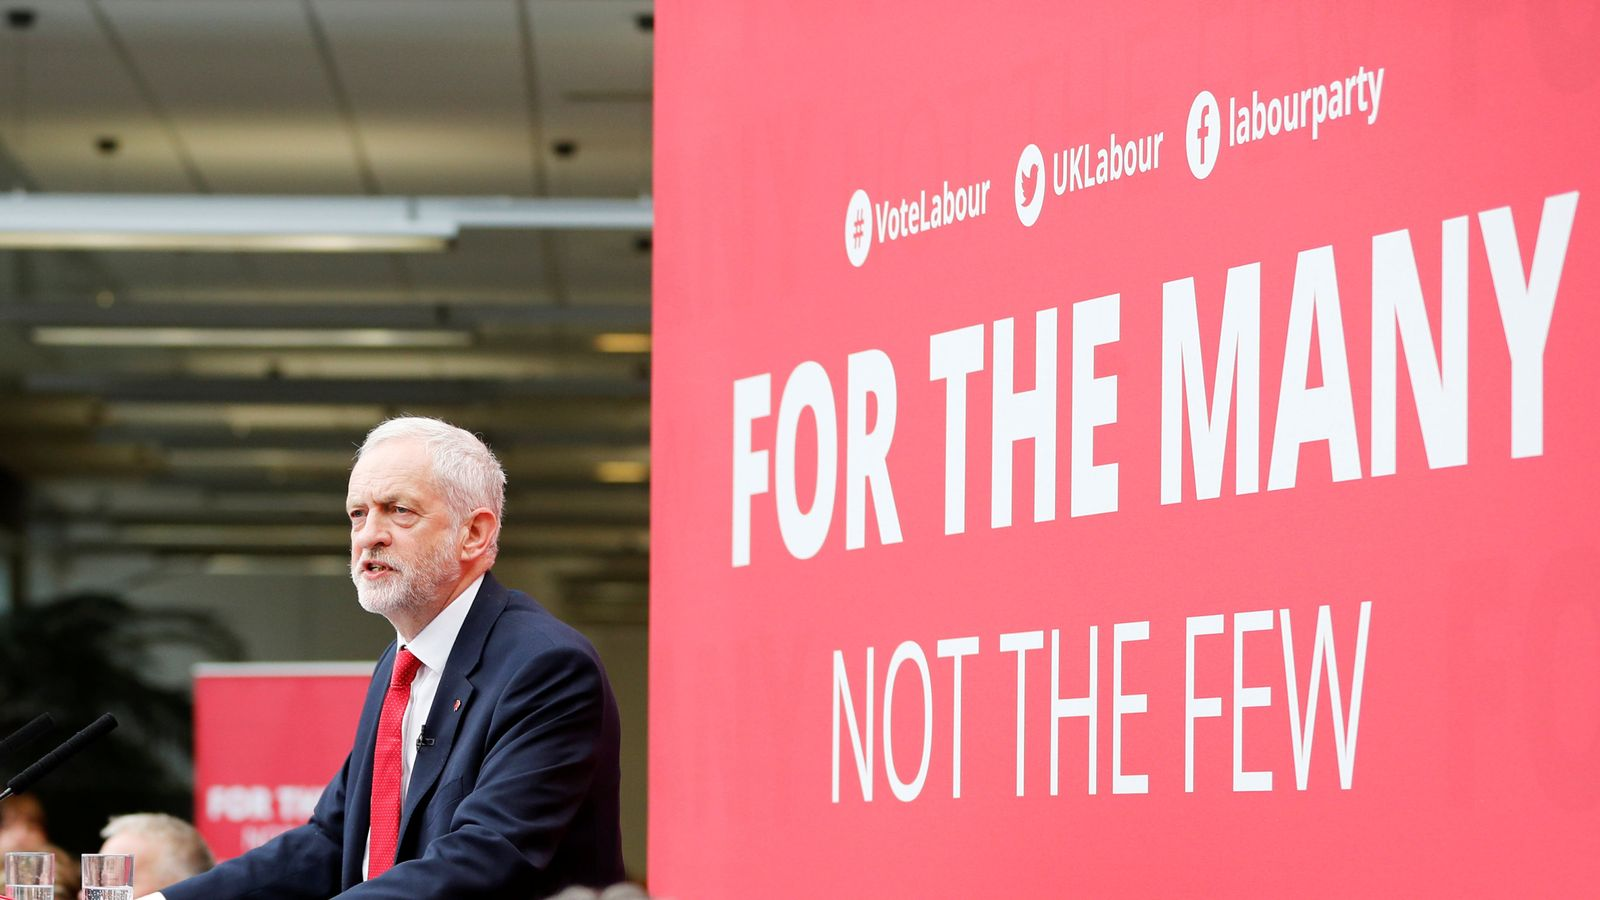 Labour to raise £4.5bn more a year from higher earners